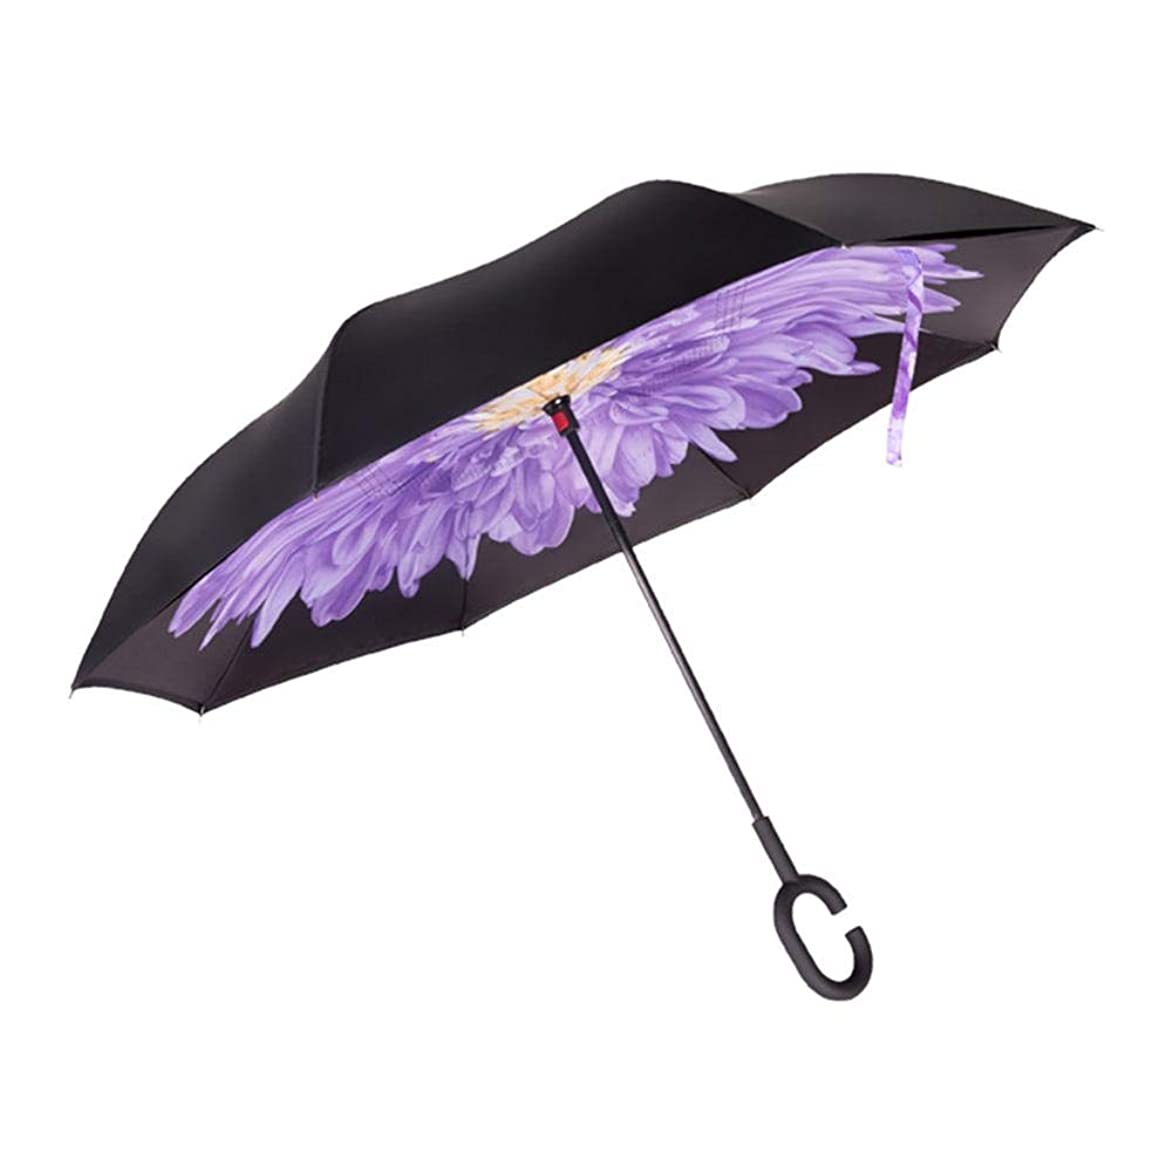 Taimot Double Layer Inverted Umbrellas Reverse Folding Umbrella Windproof UV Protection Big Straight Umbrella with C-Shaped Handle for Car Rain Outdoor Use